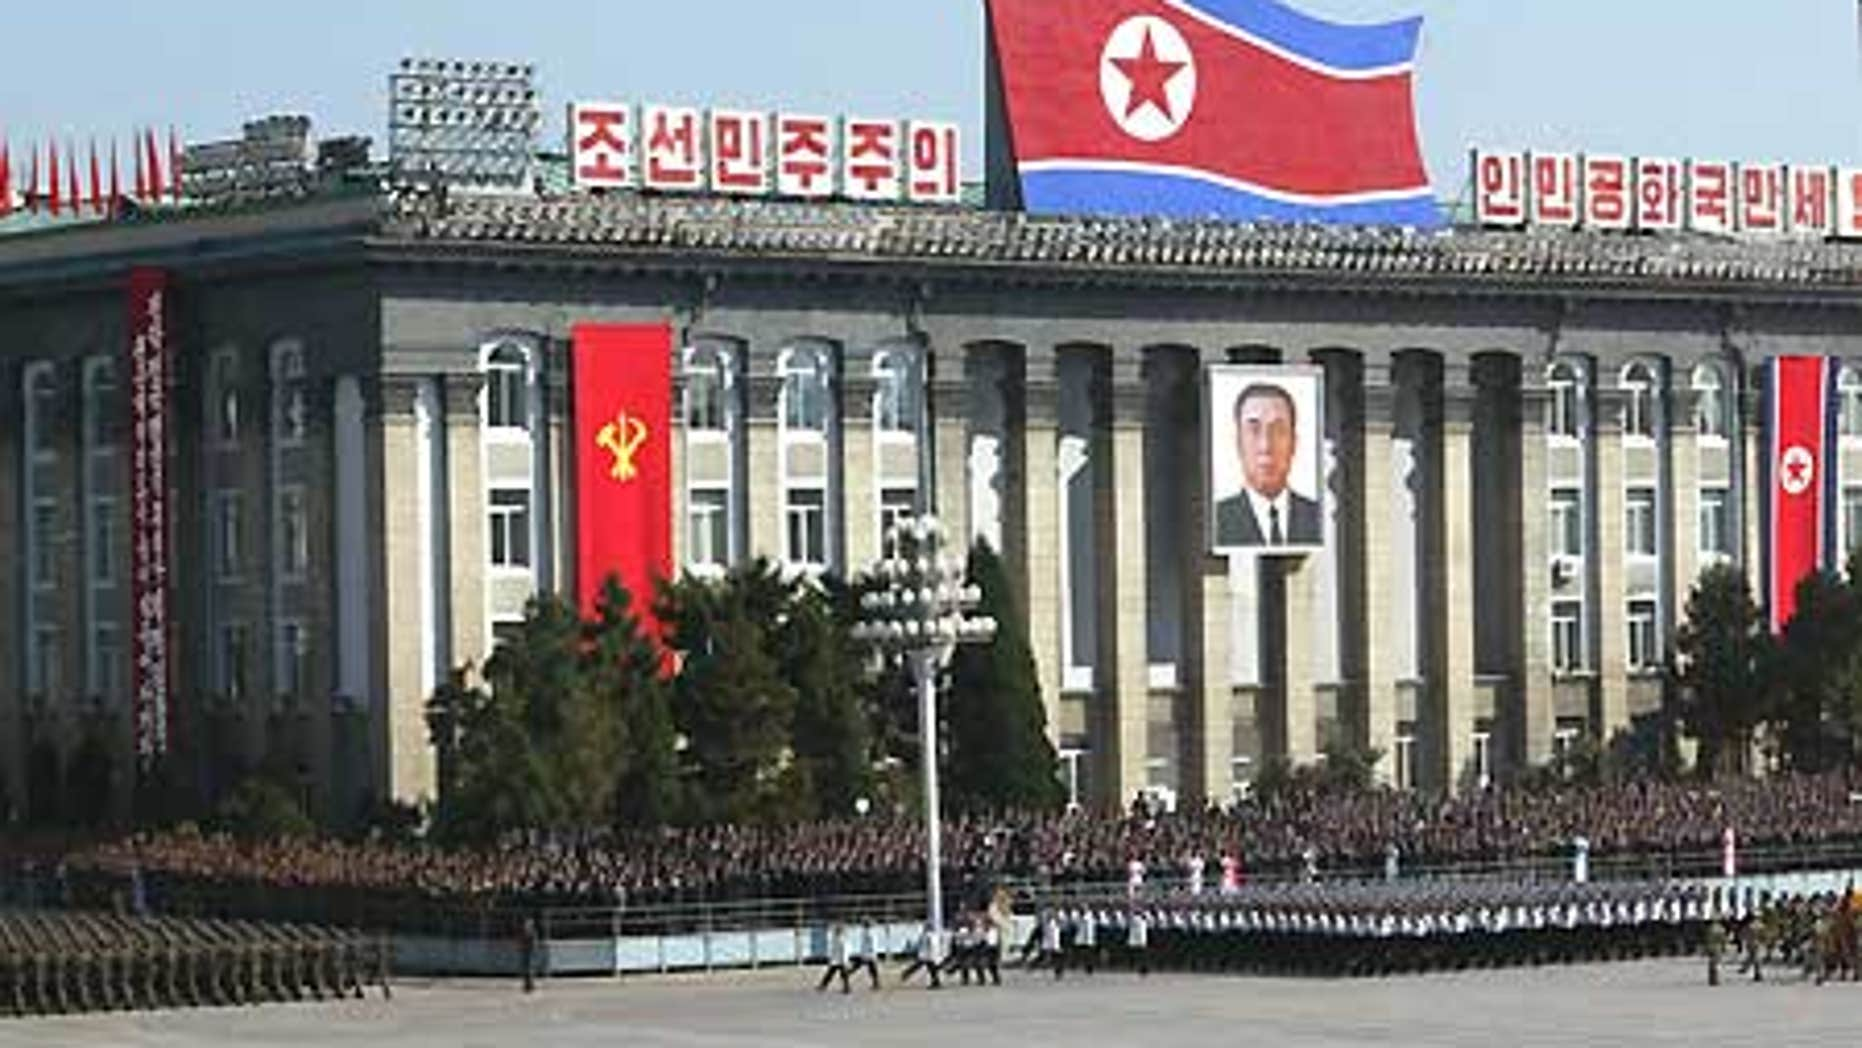 File: North Korean soldiers parade in front of Workers' Party of Korea headquarters building in Pyongyang.